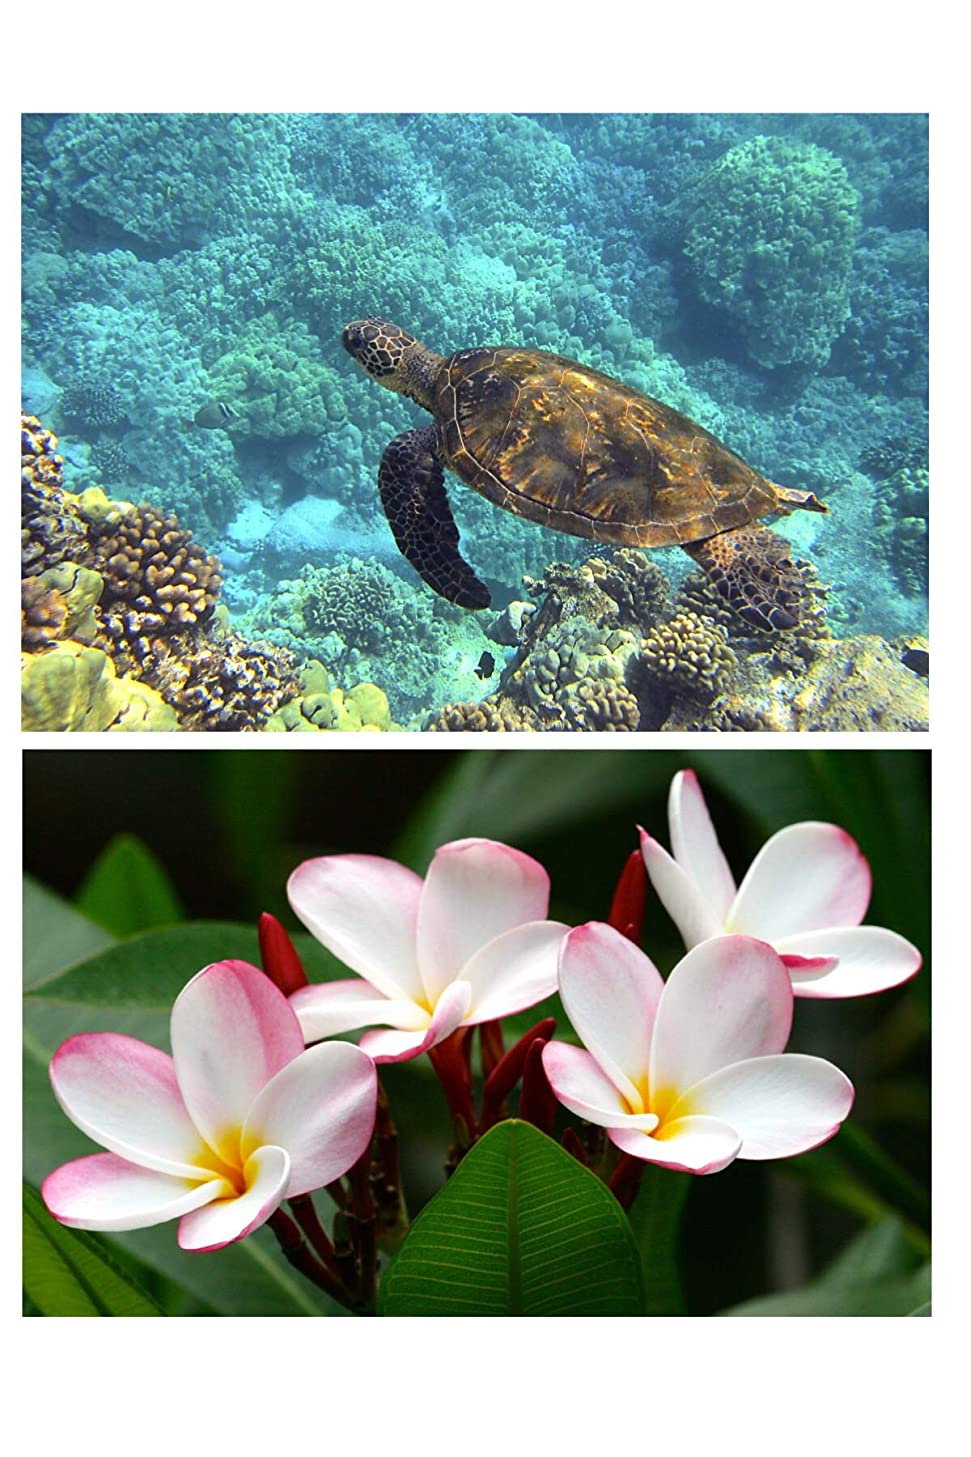 HiSupply 5D Diamond Art Painting Kit Hawaiian Plumeria Flower and Turtle Honu - Set of 2 kits